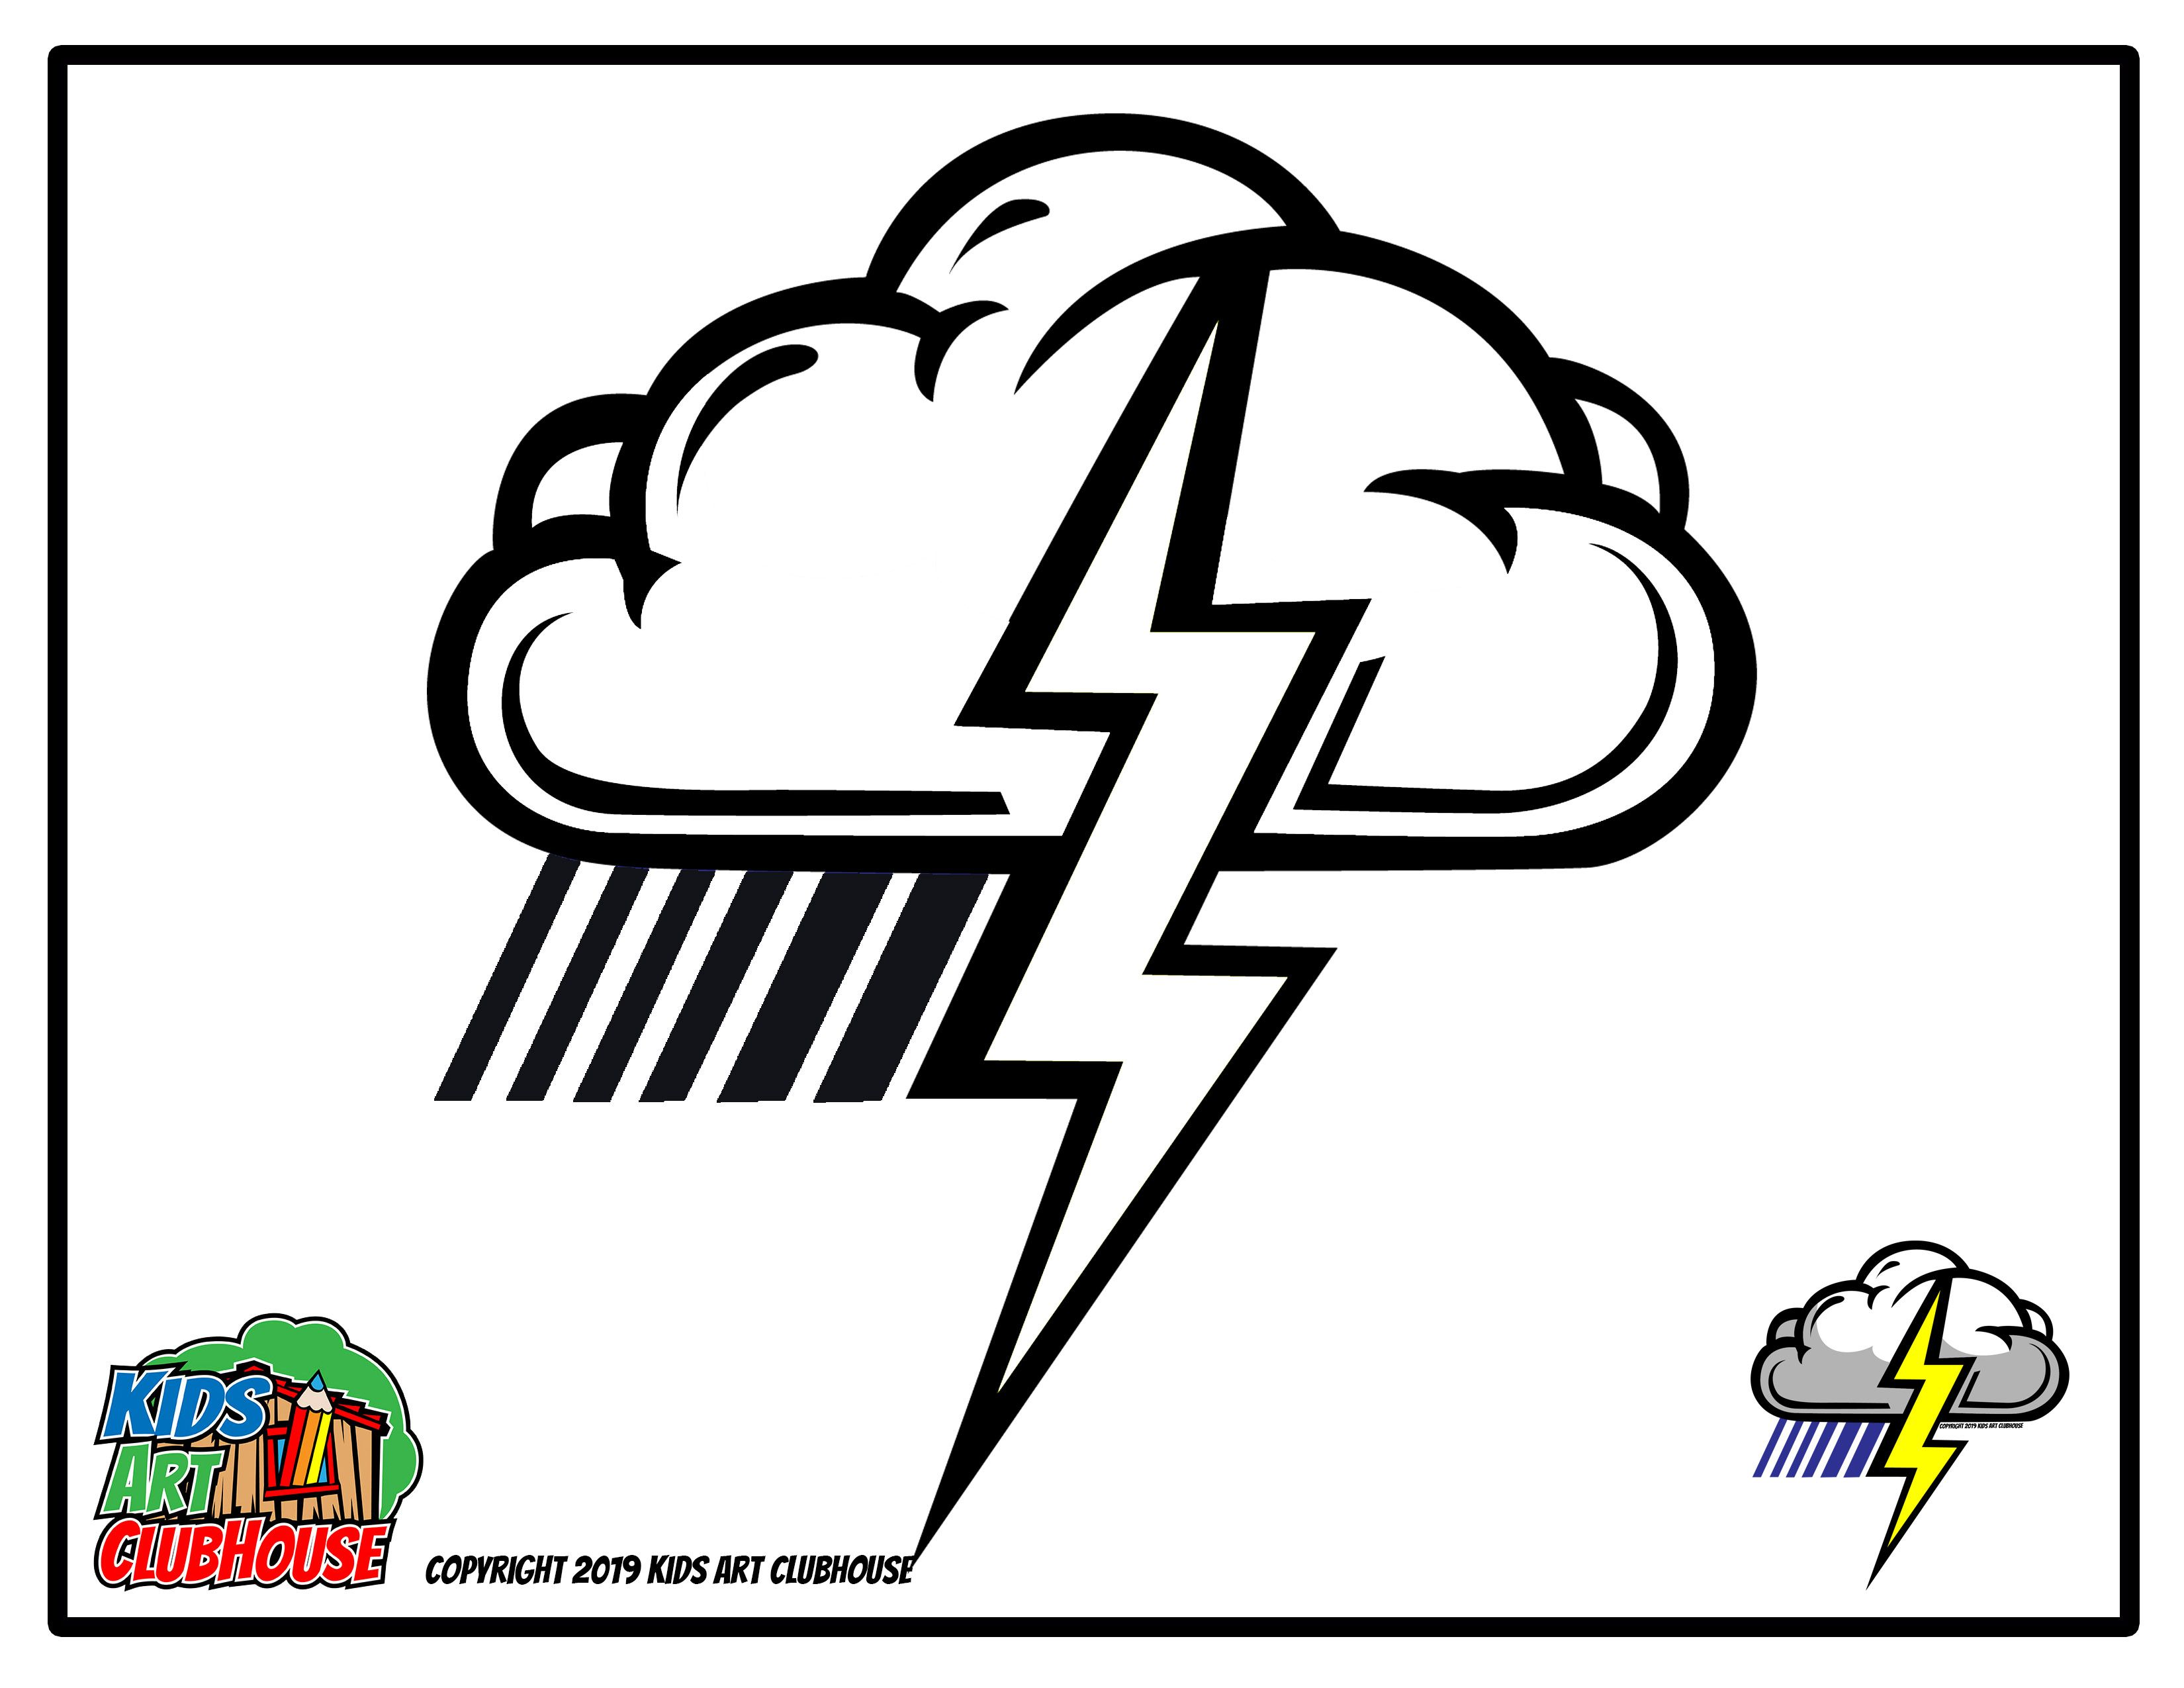 How To Draw A Lightning Bolt Printable Coloring Page Printable Coloring Pages Coloring Pages Printable Coloring